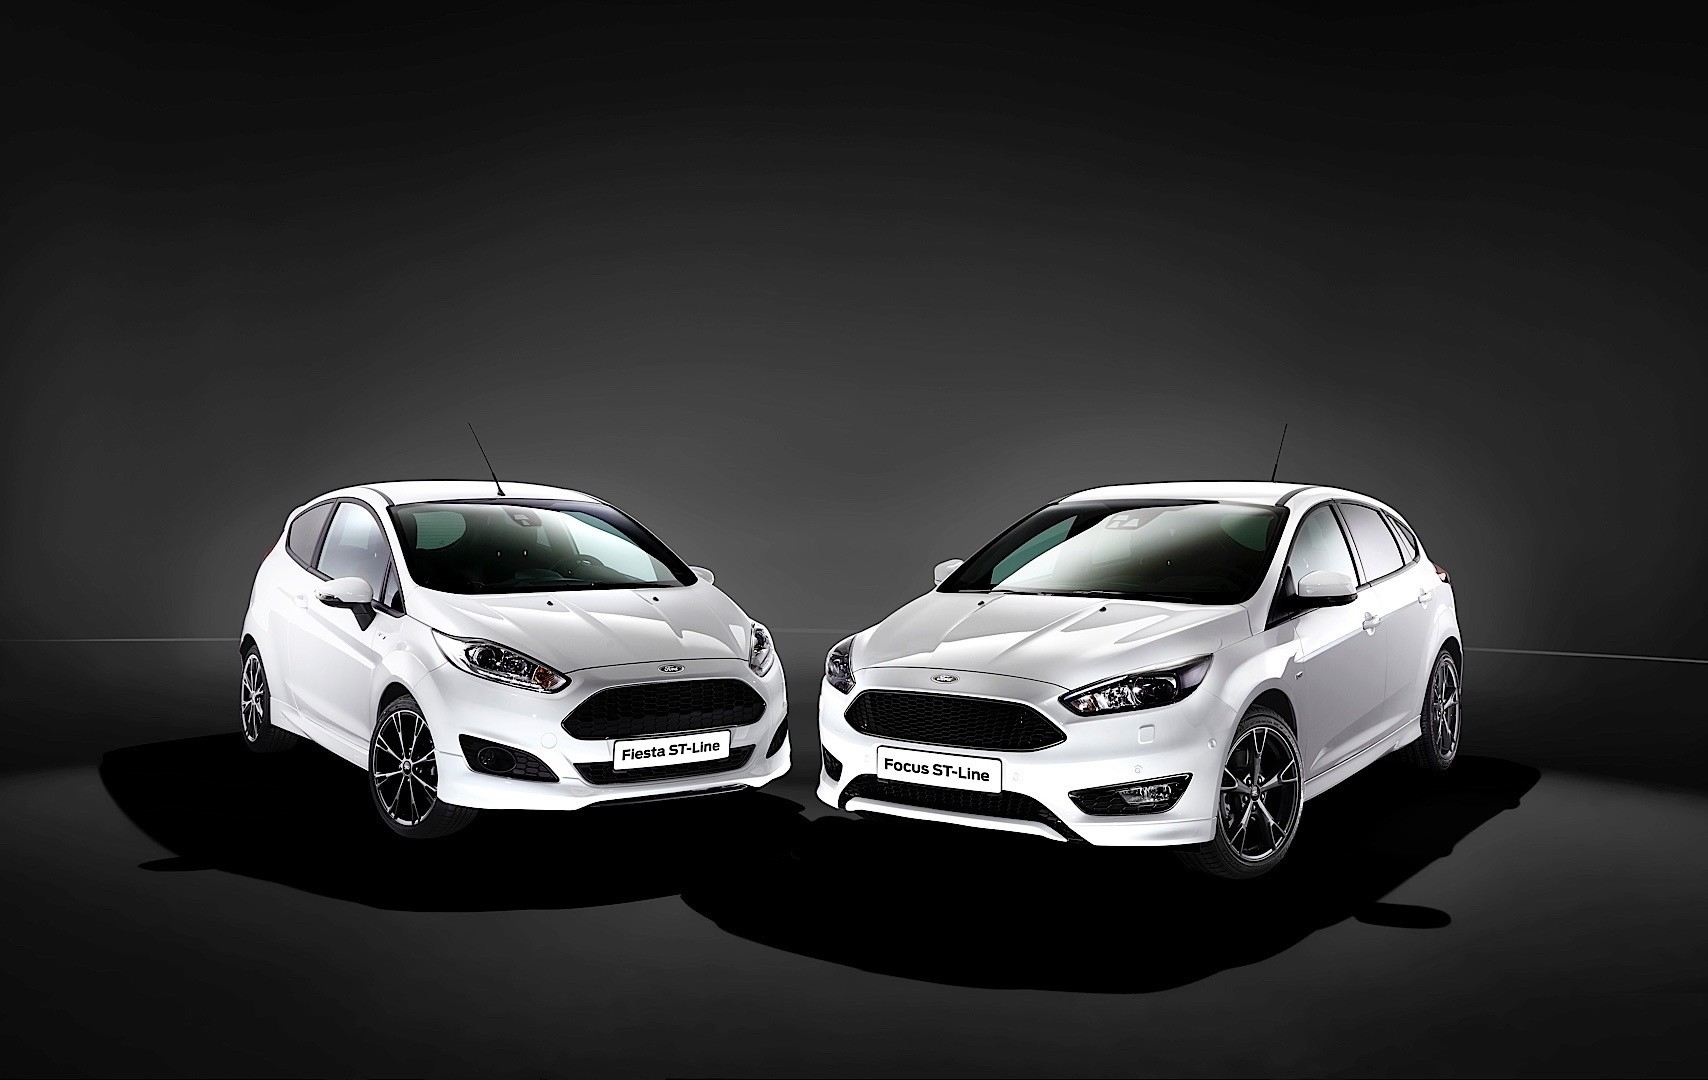 Ford St Line Package Now Available To Order For The Fiesta And Focus Autoevolution